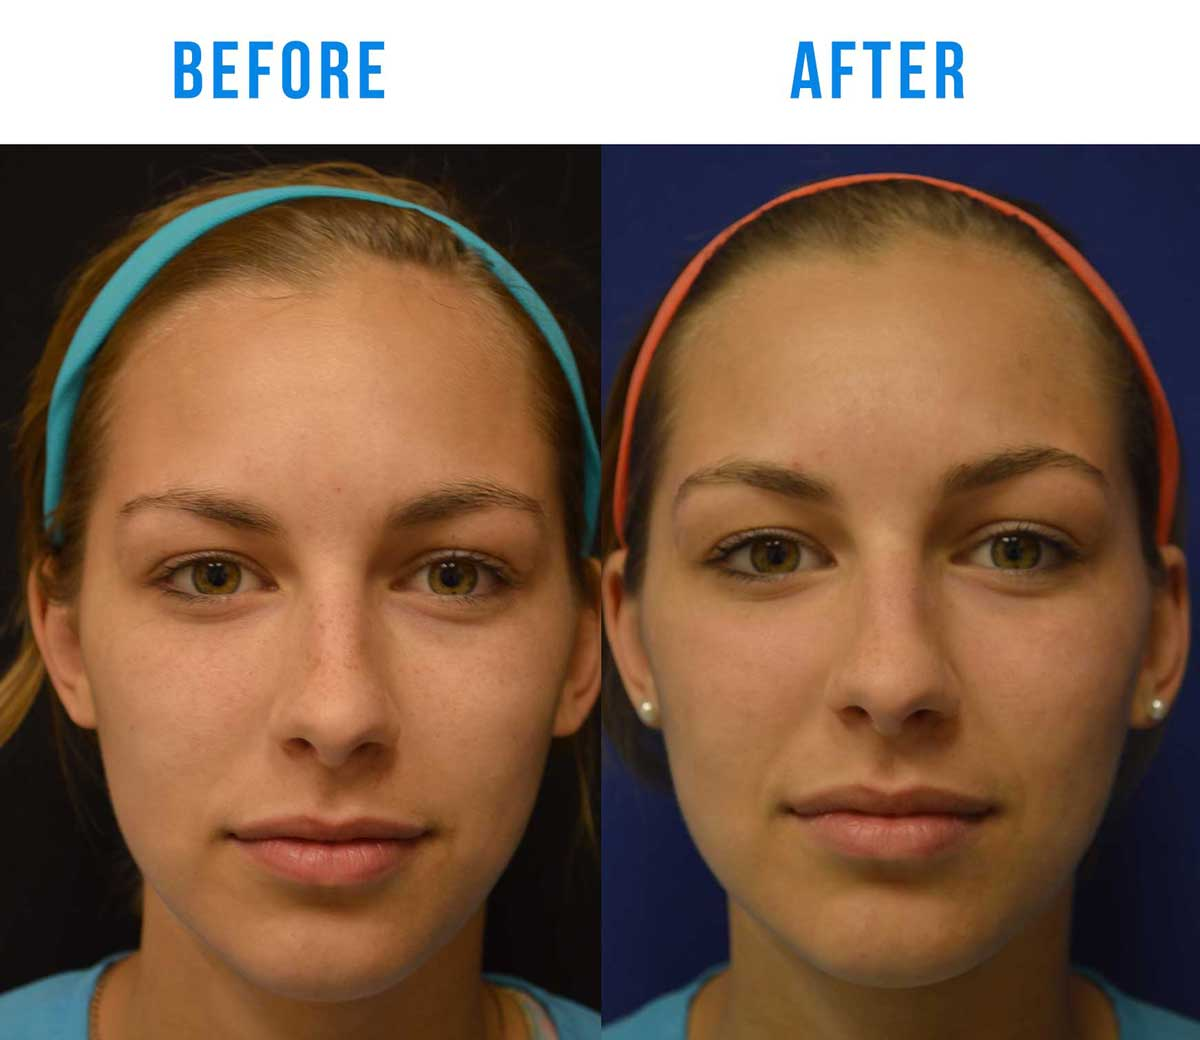 Before and After Age Spot Laser Treatment Laser Spot Removal Treatment